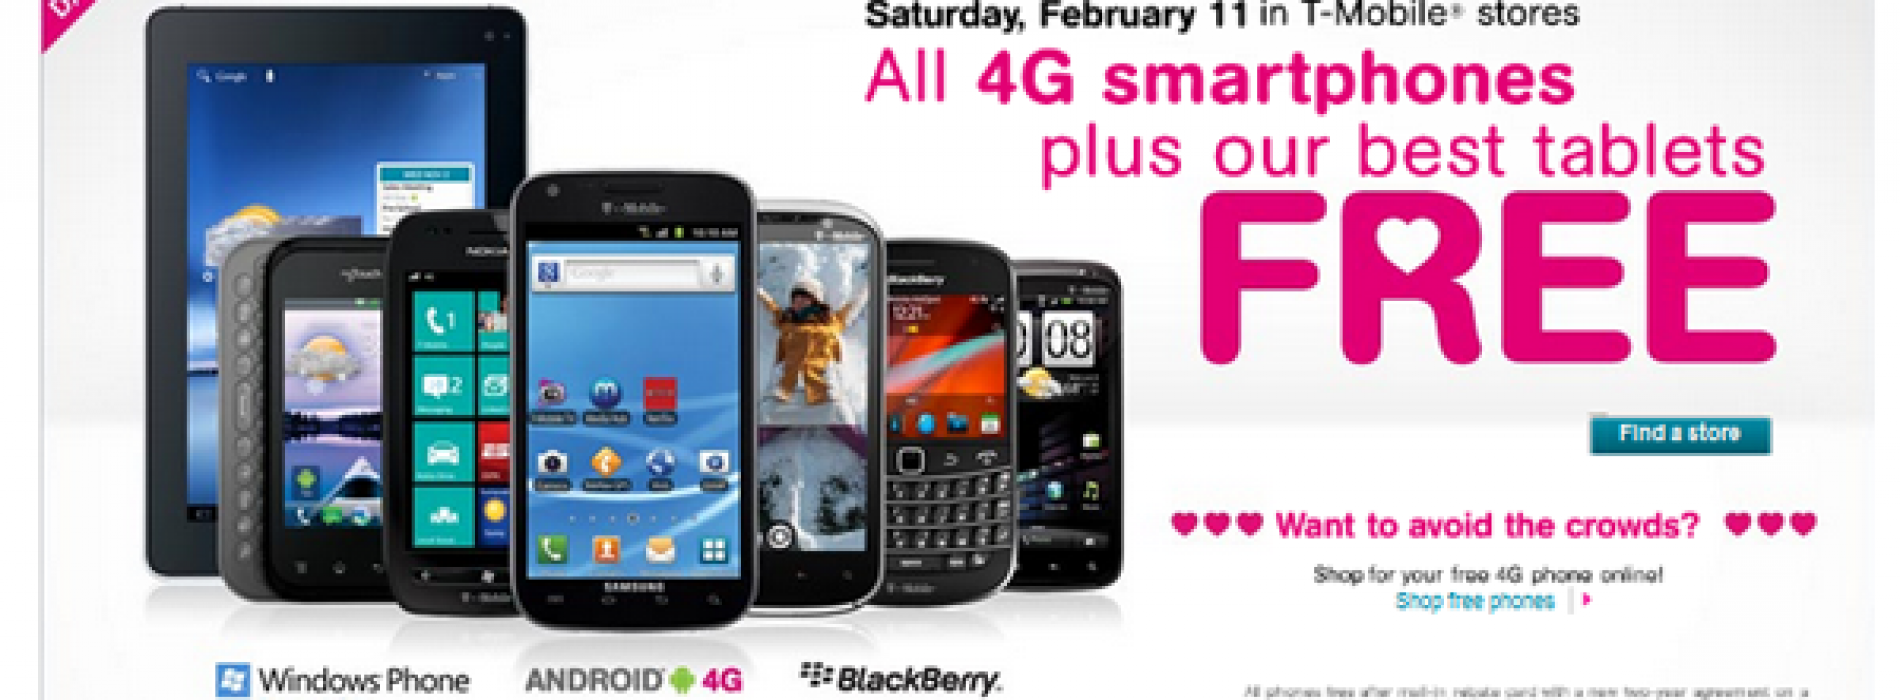 T-Mobile setting 4G phones, tablets free for Valentine's Day